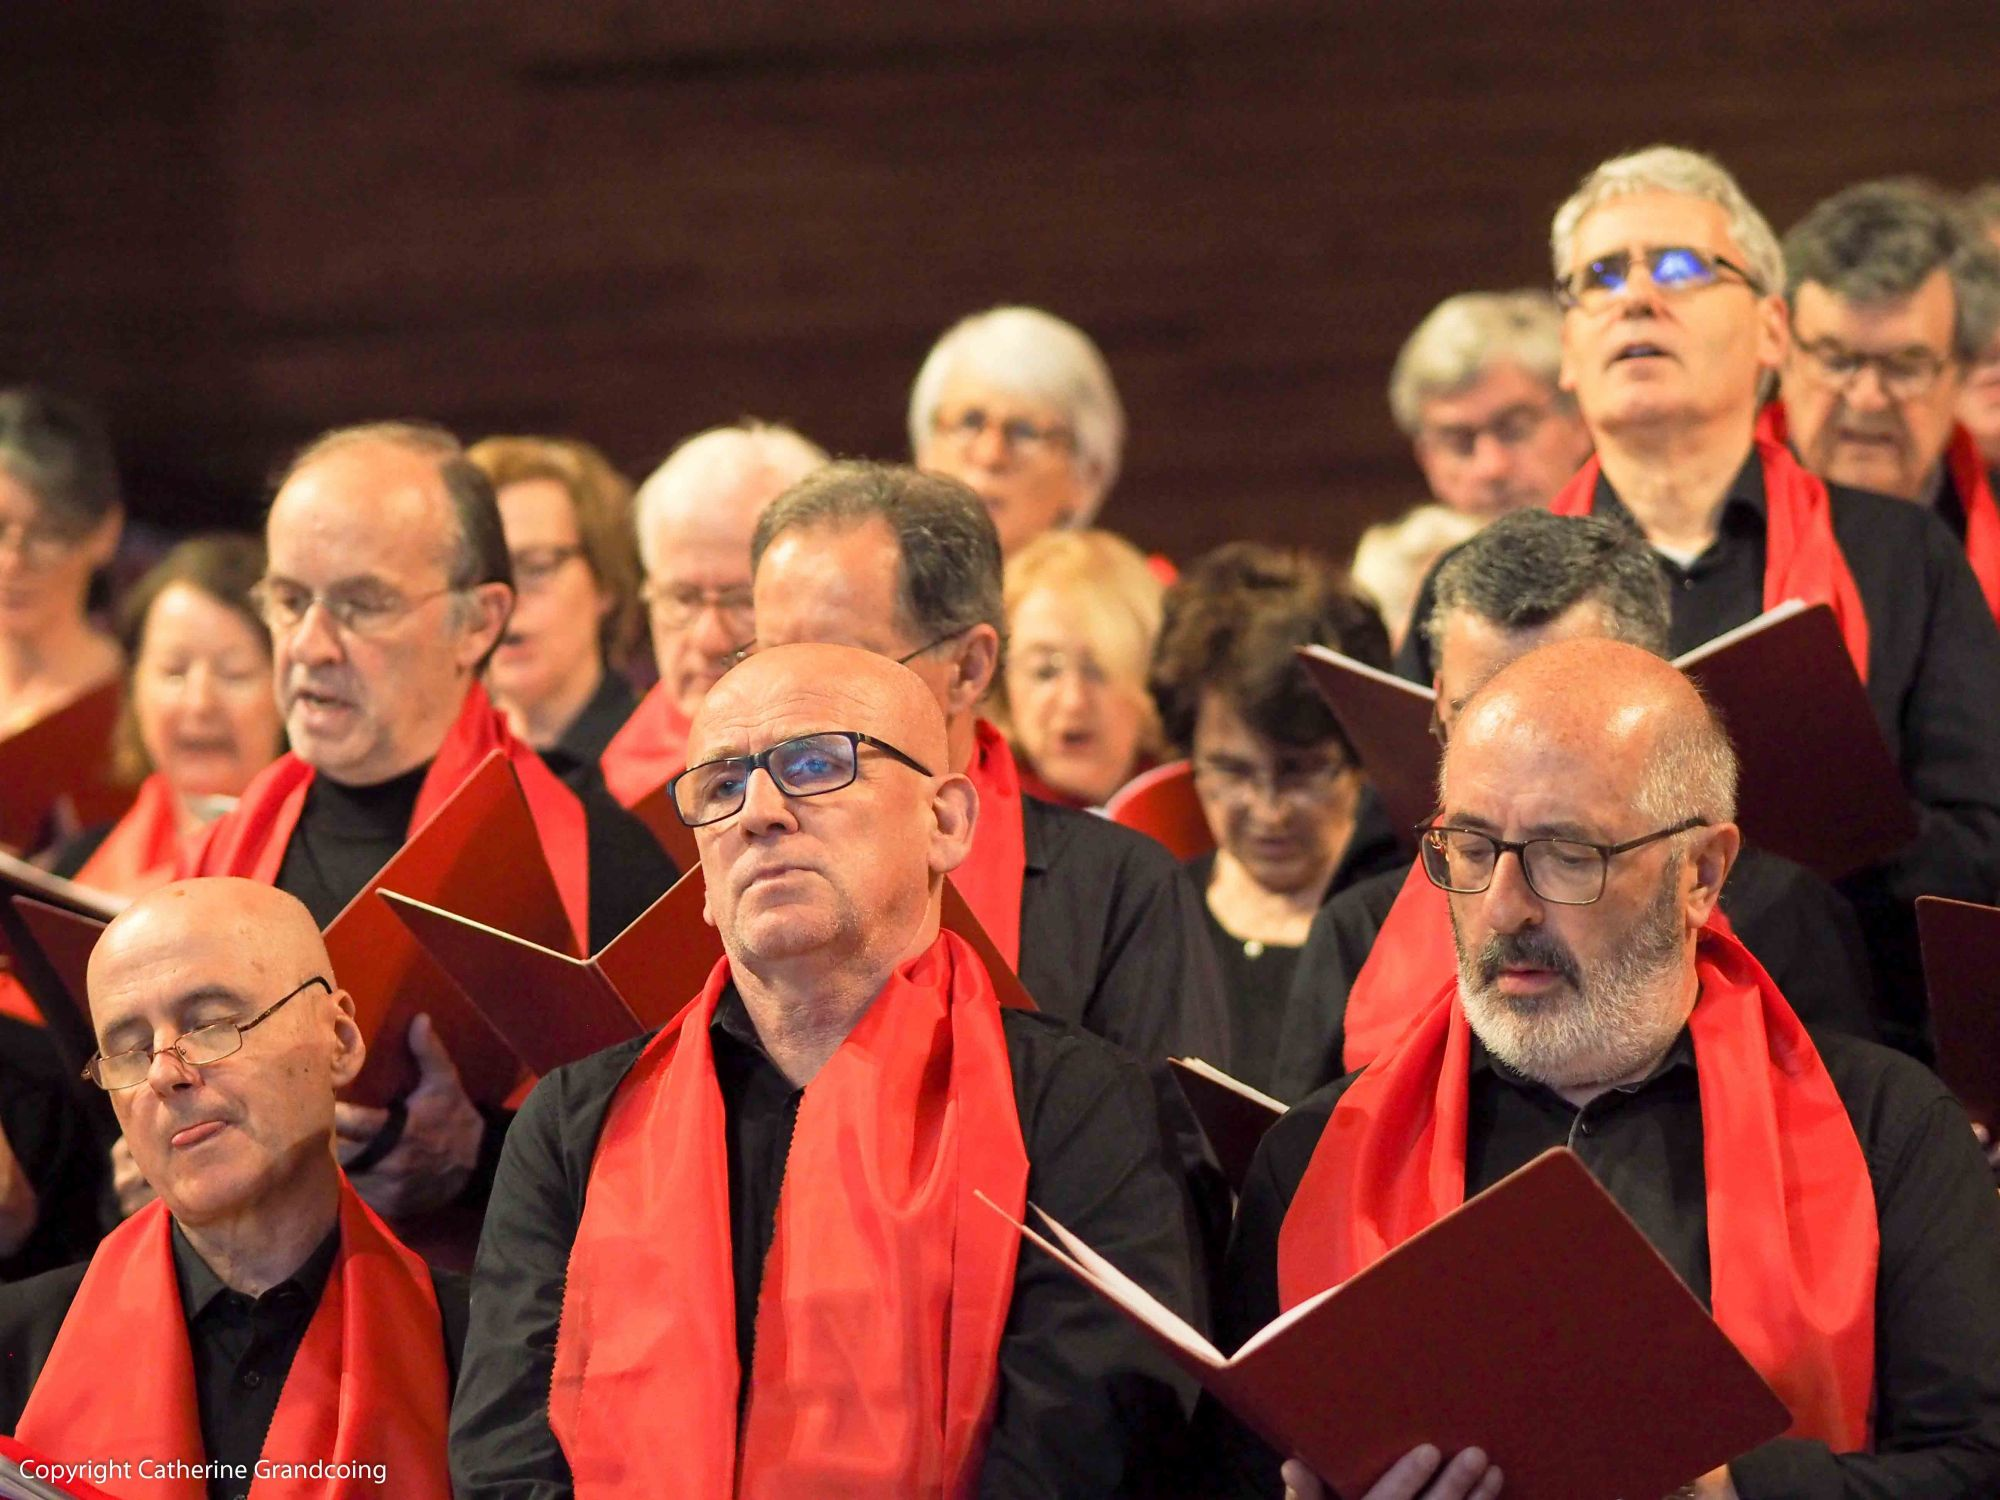 concert-chorale-cantabile-2019-105a